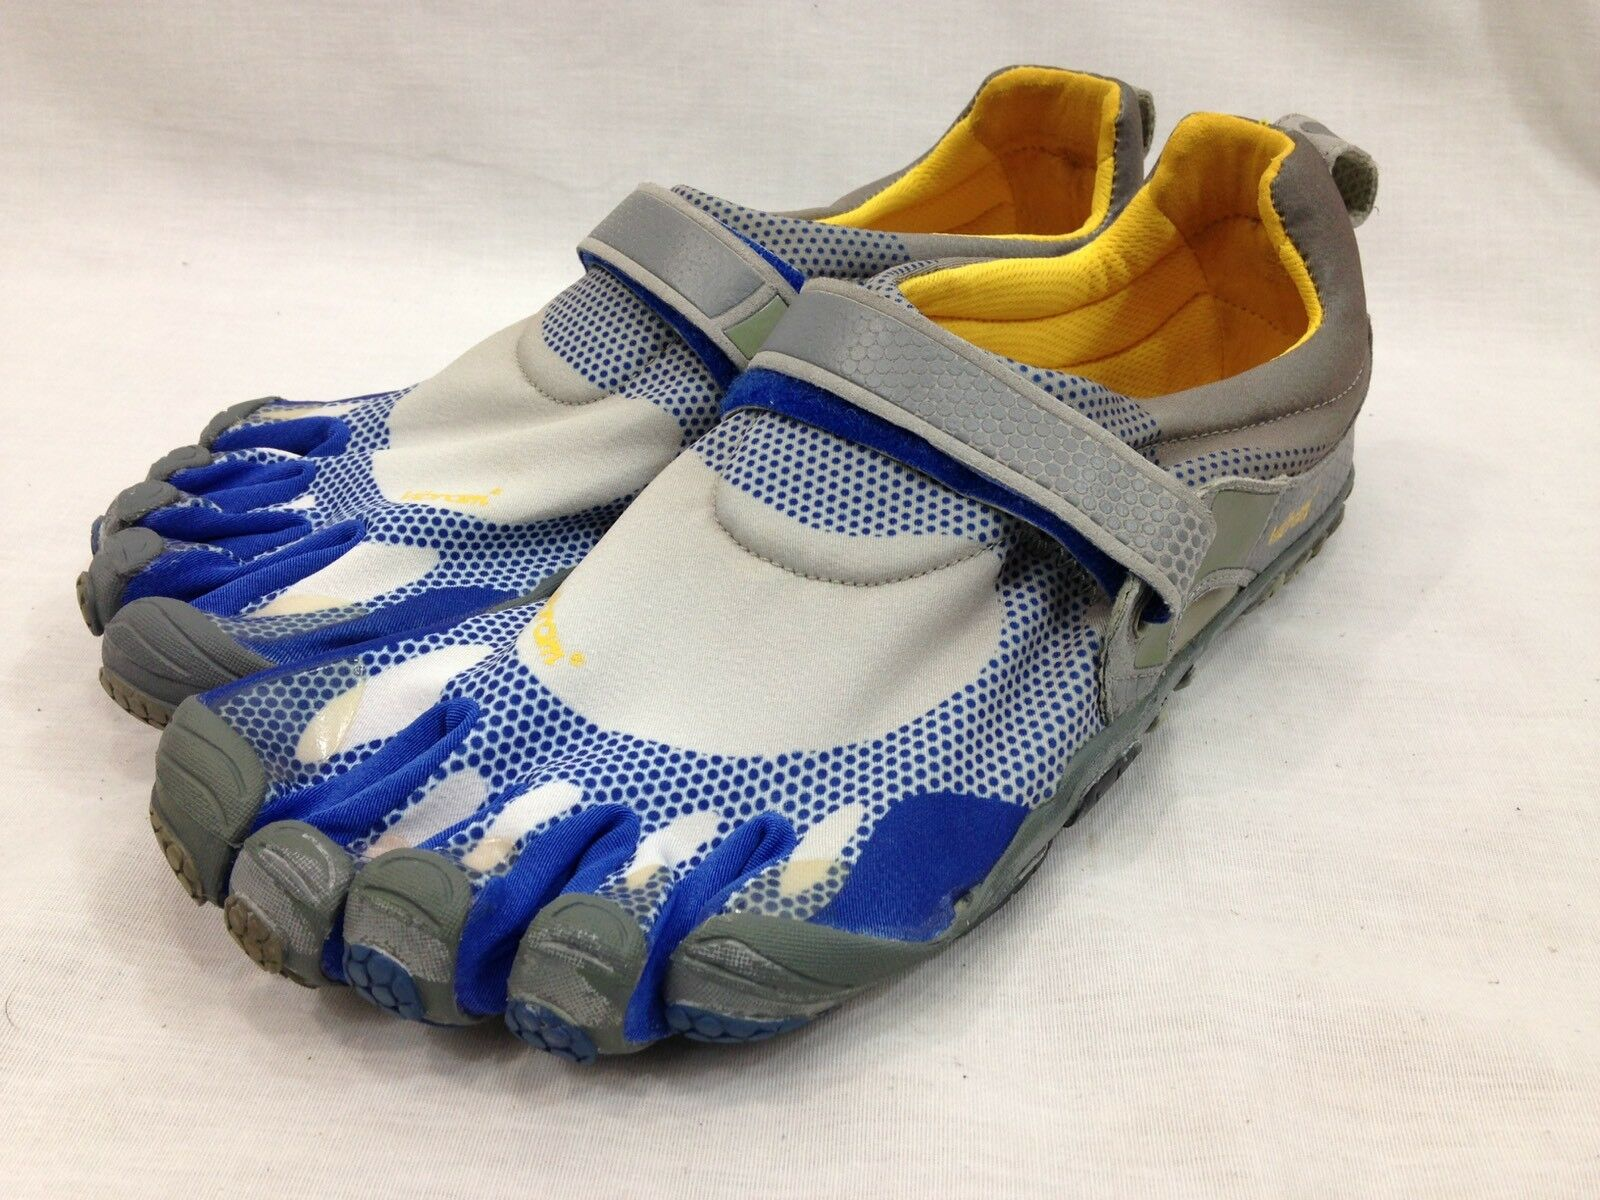 Vibram Five Fingers 349 Chaussures hommes Euro 43 US 10 bleu Yellow Minimalist Running